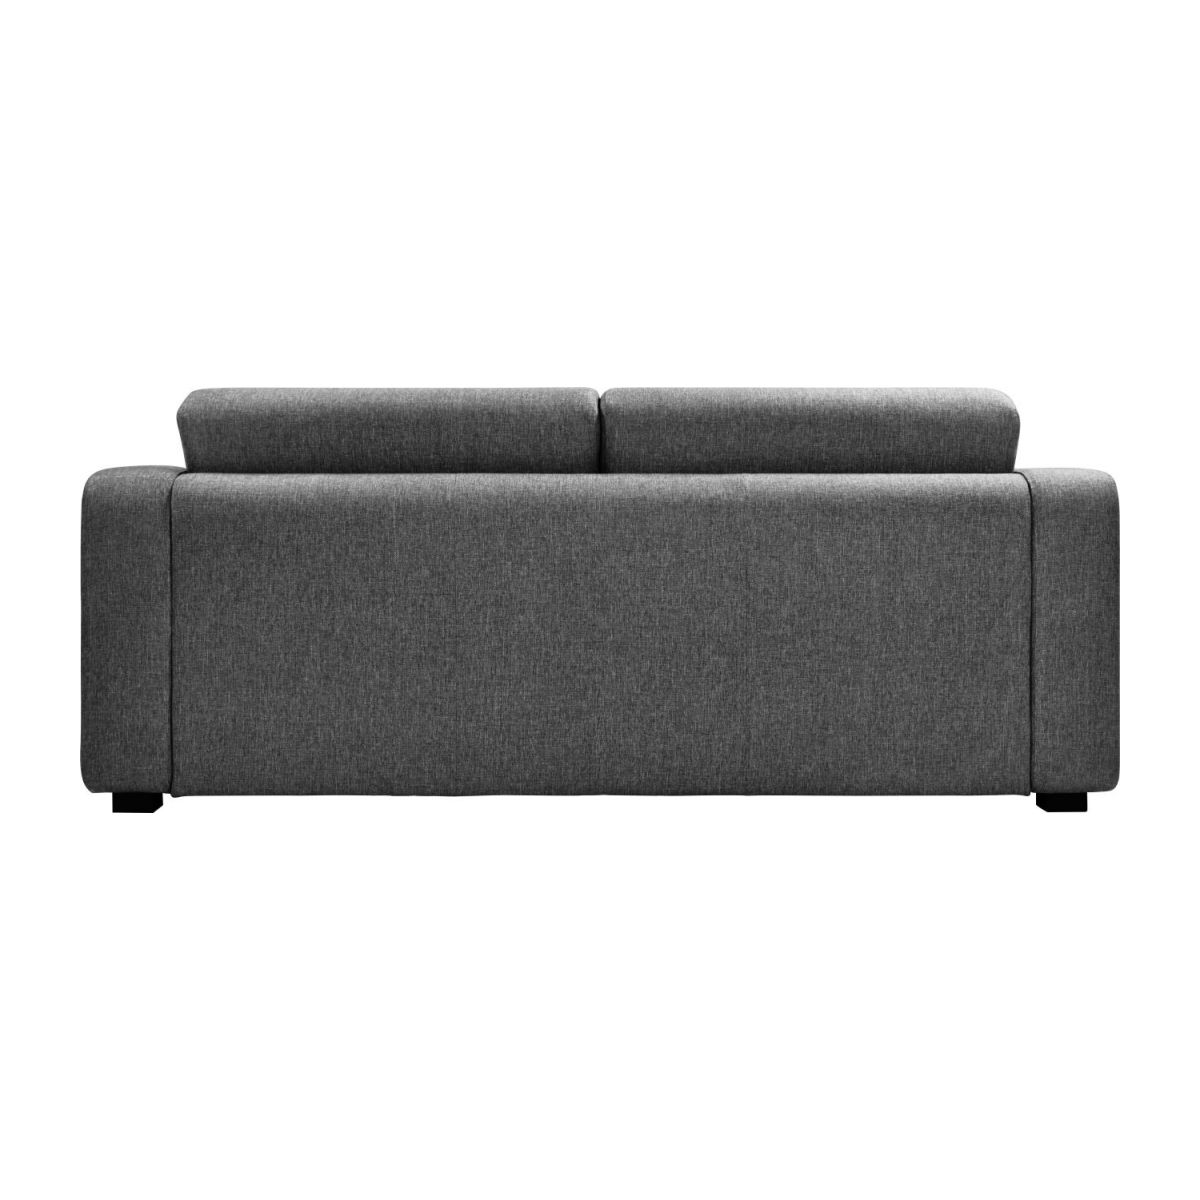 3-seater fabric sofa n°4